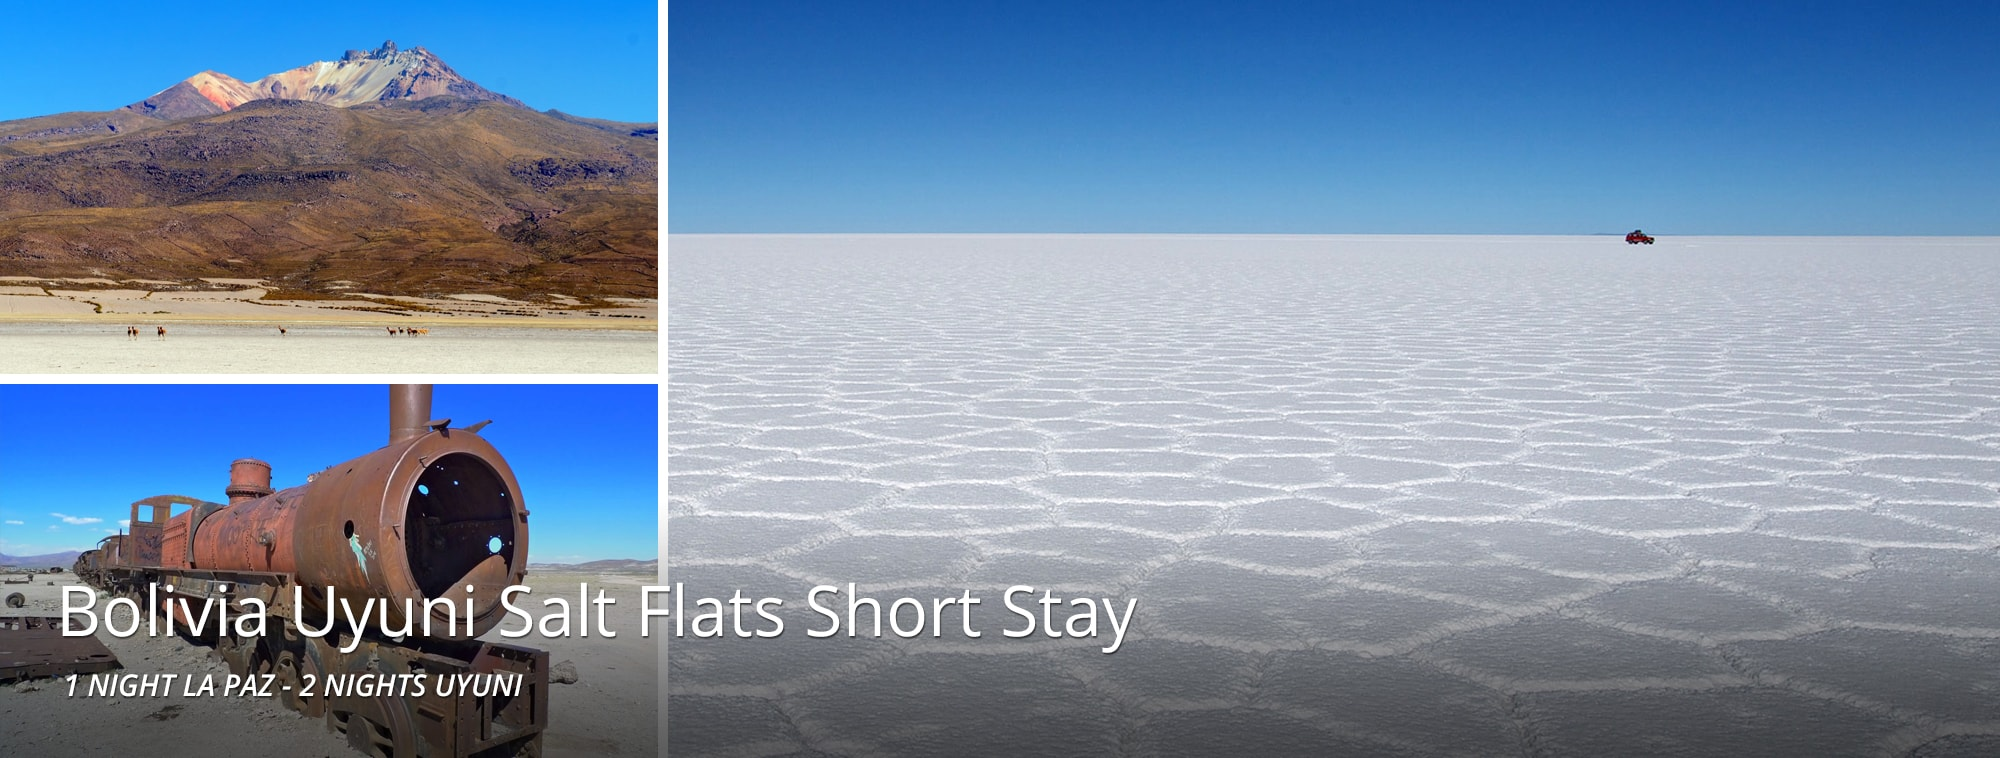 Bolivia Uyuni Salt Flats Short Stay Top Banner